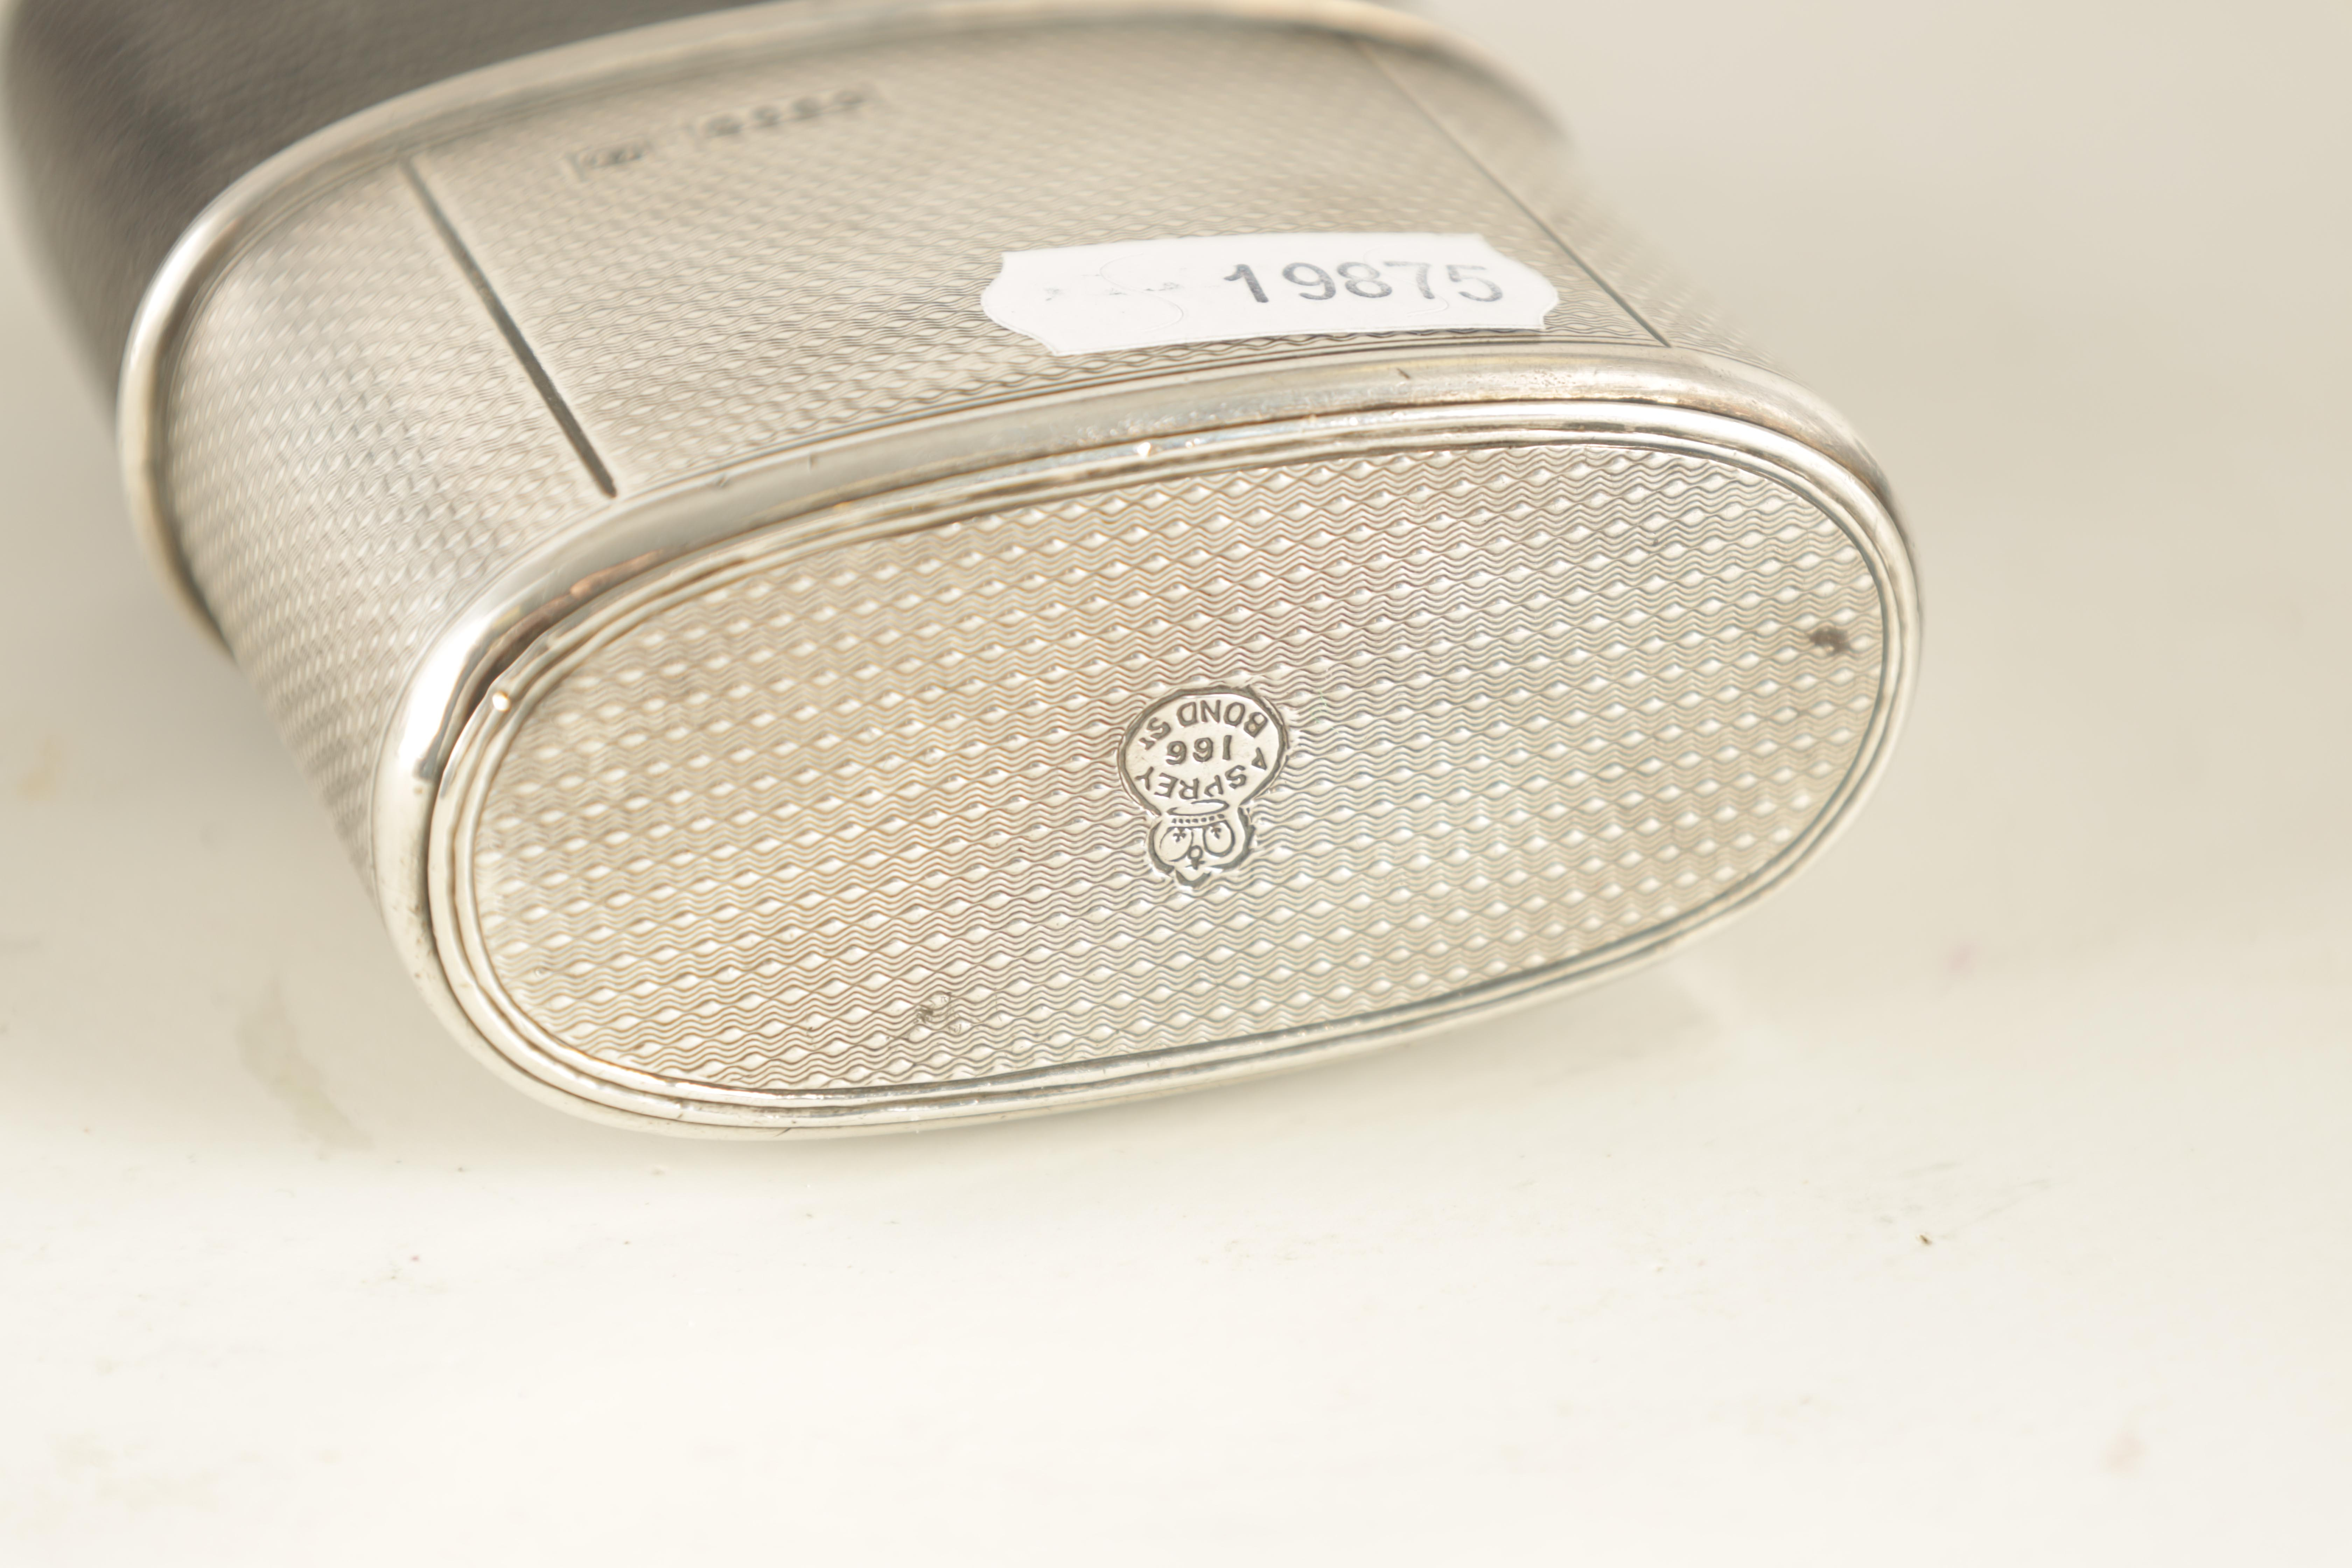 A VICTORIAN SILVER AND MOROCCAN LEATHER HIP FLASK RETAILED BY ASPREY 186 BOND STREET with engine- - Image 7 of 8